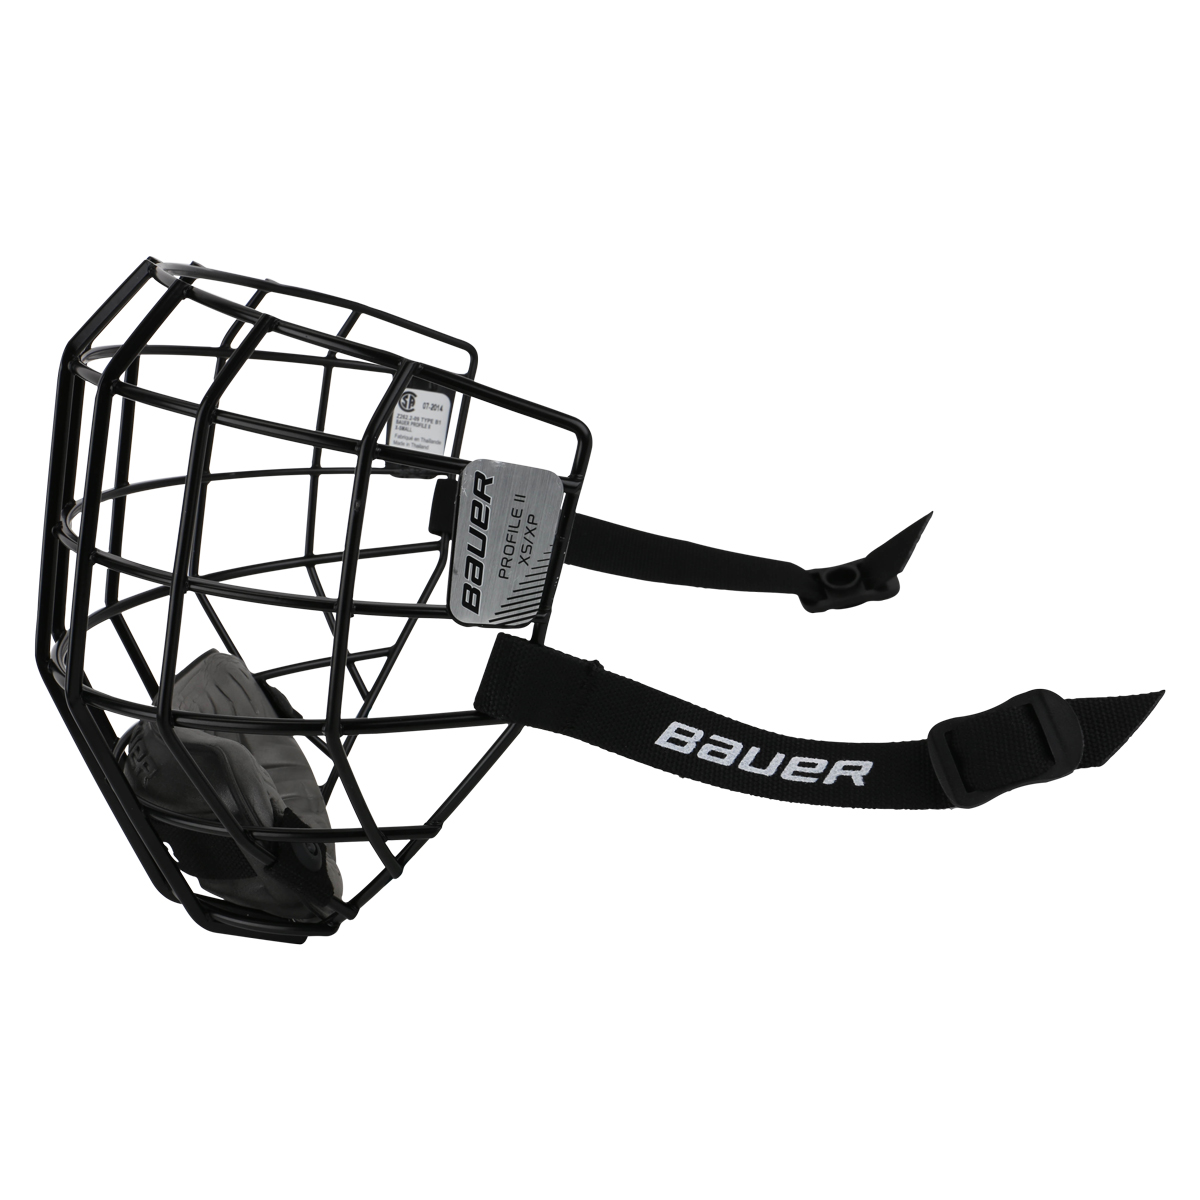 facemasks in hockey You'll find the area's largest selection along with the latest technology in hockey  headwear at hockey world gerrells sports center the facemask also plays a.